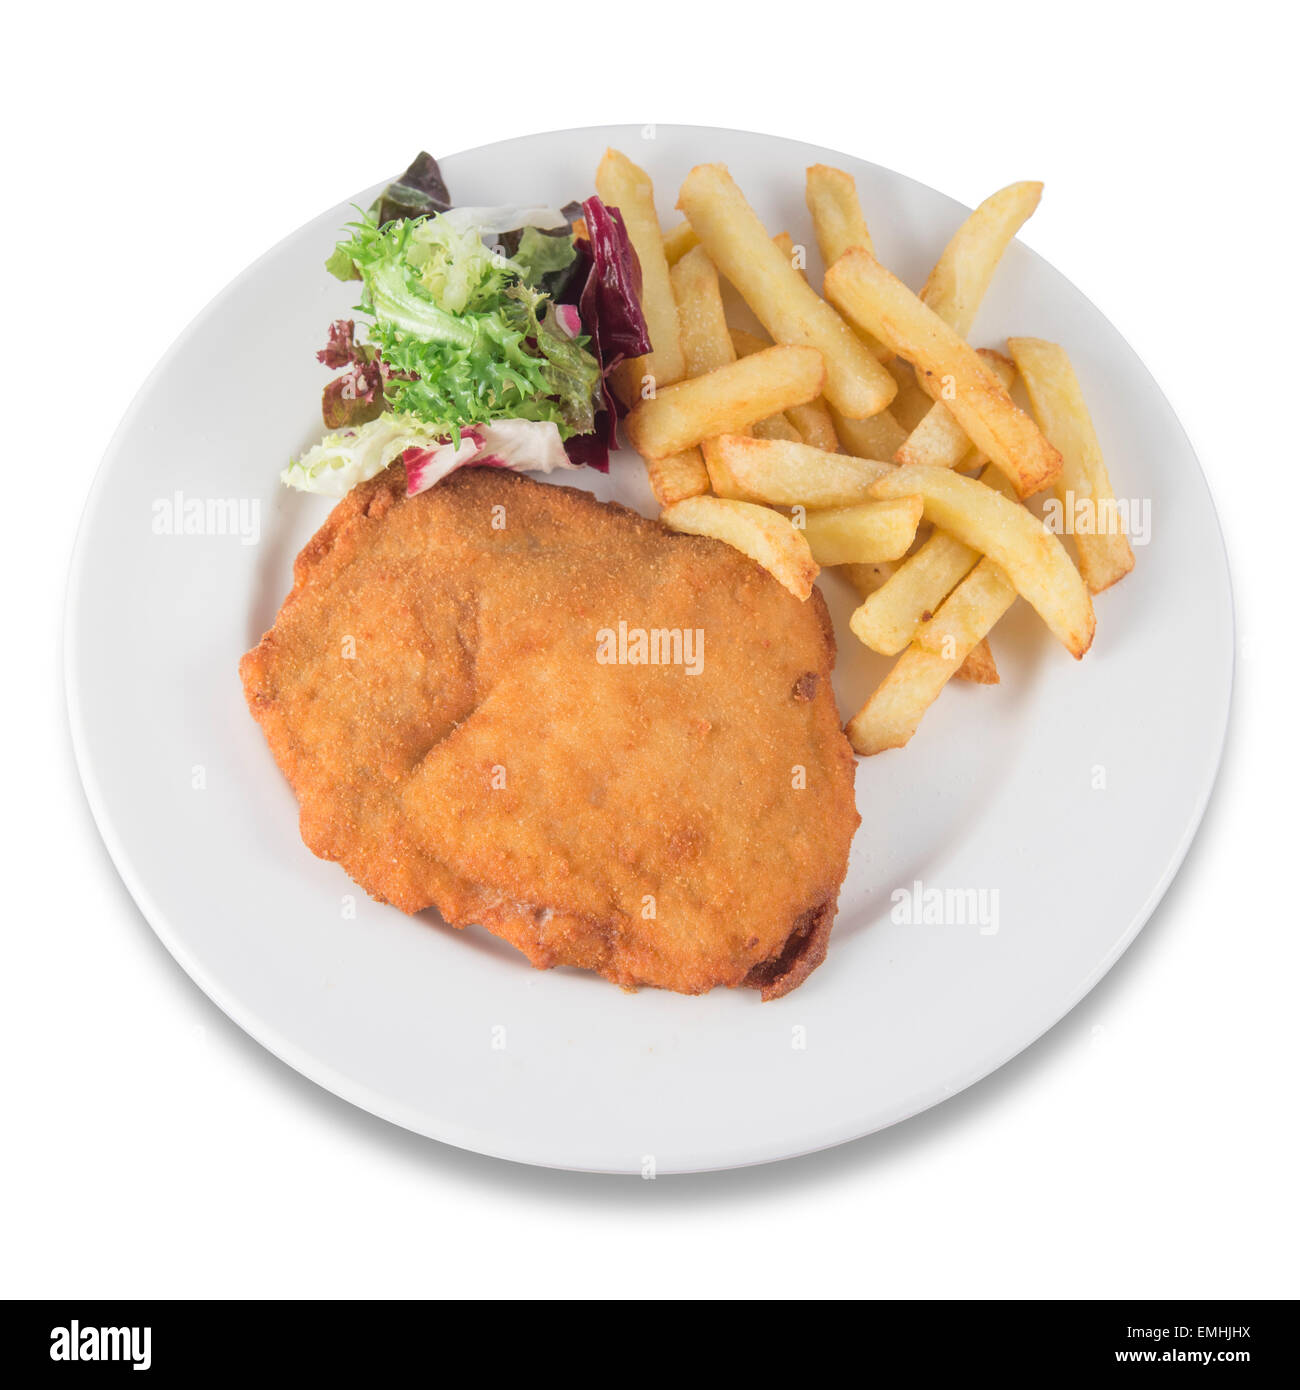 breaded steak with potatoes and salad - Stock Image